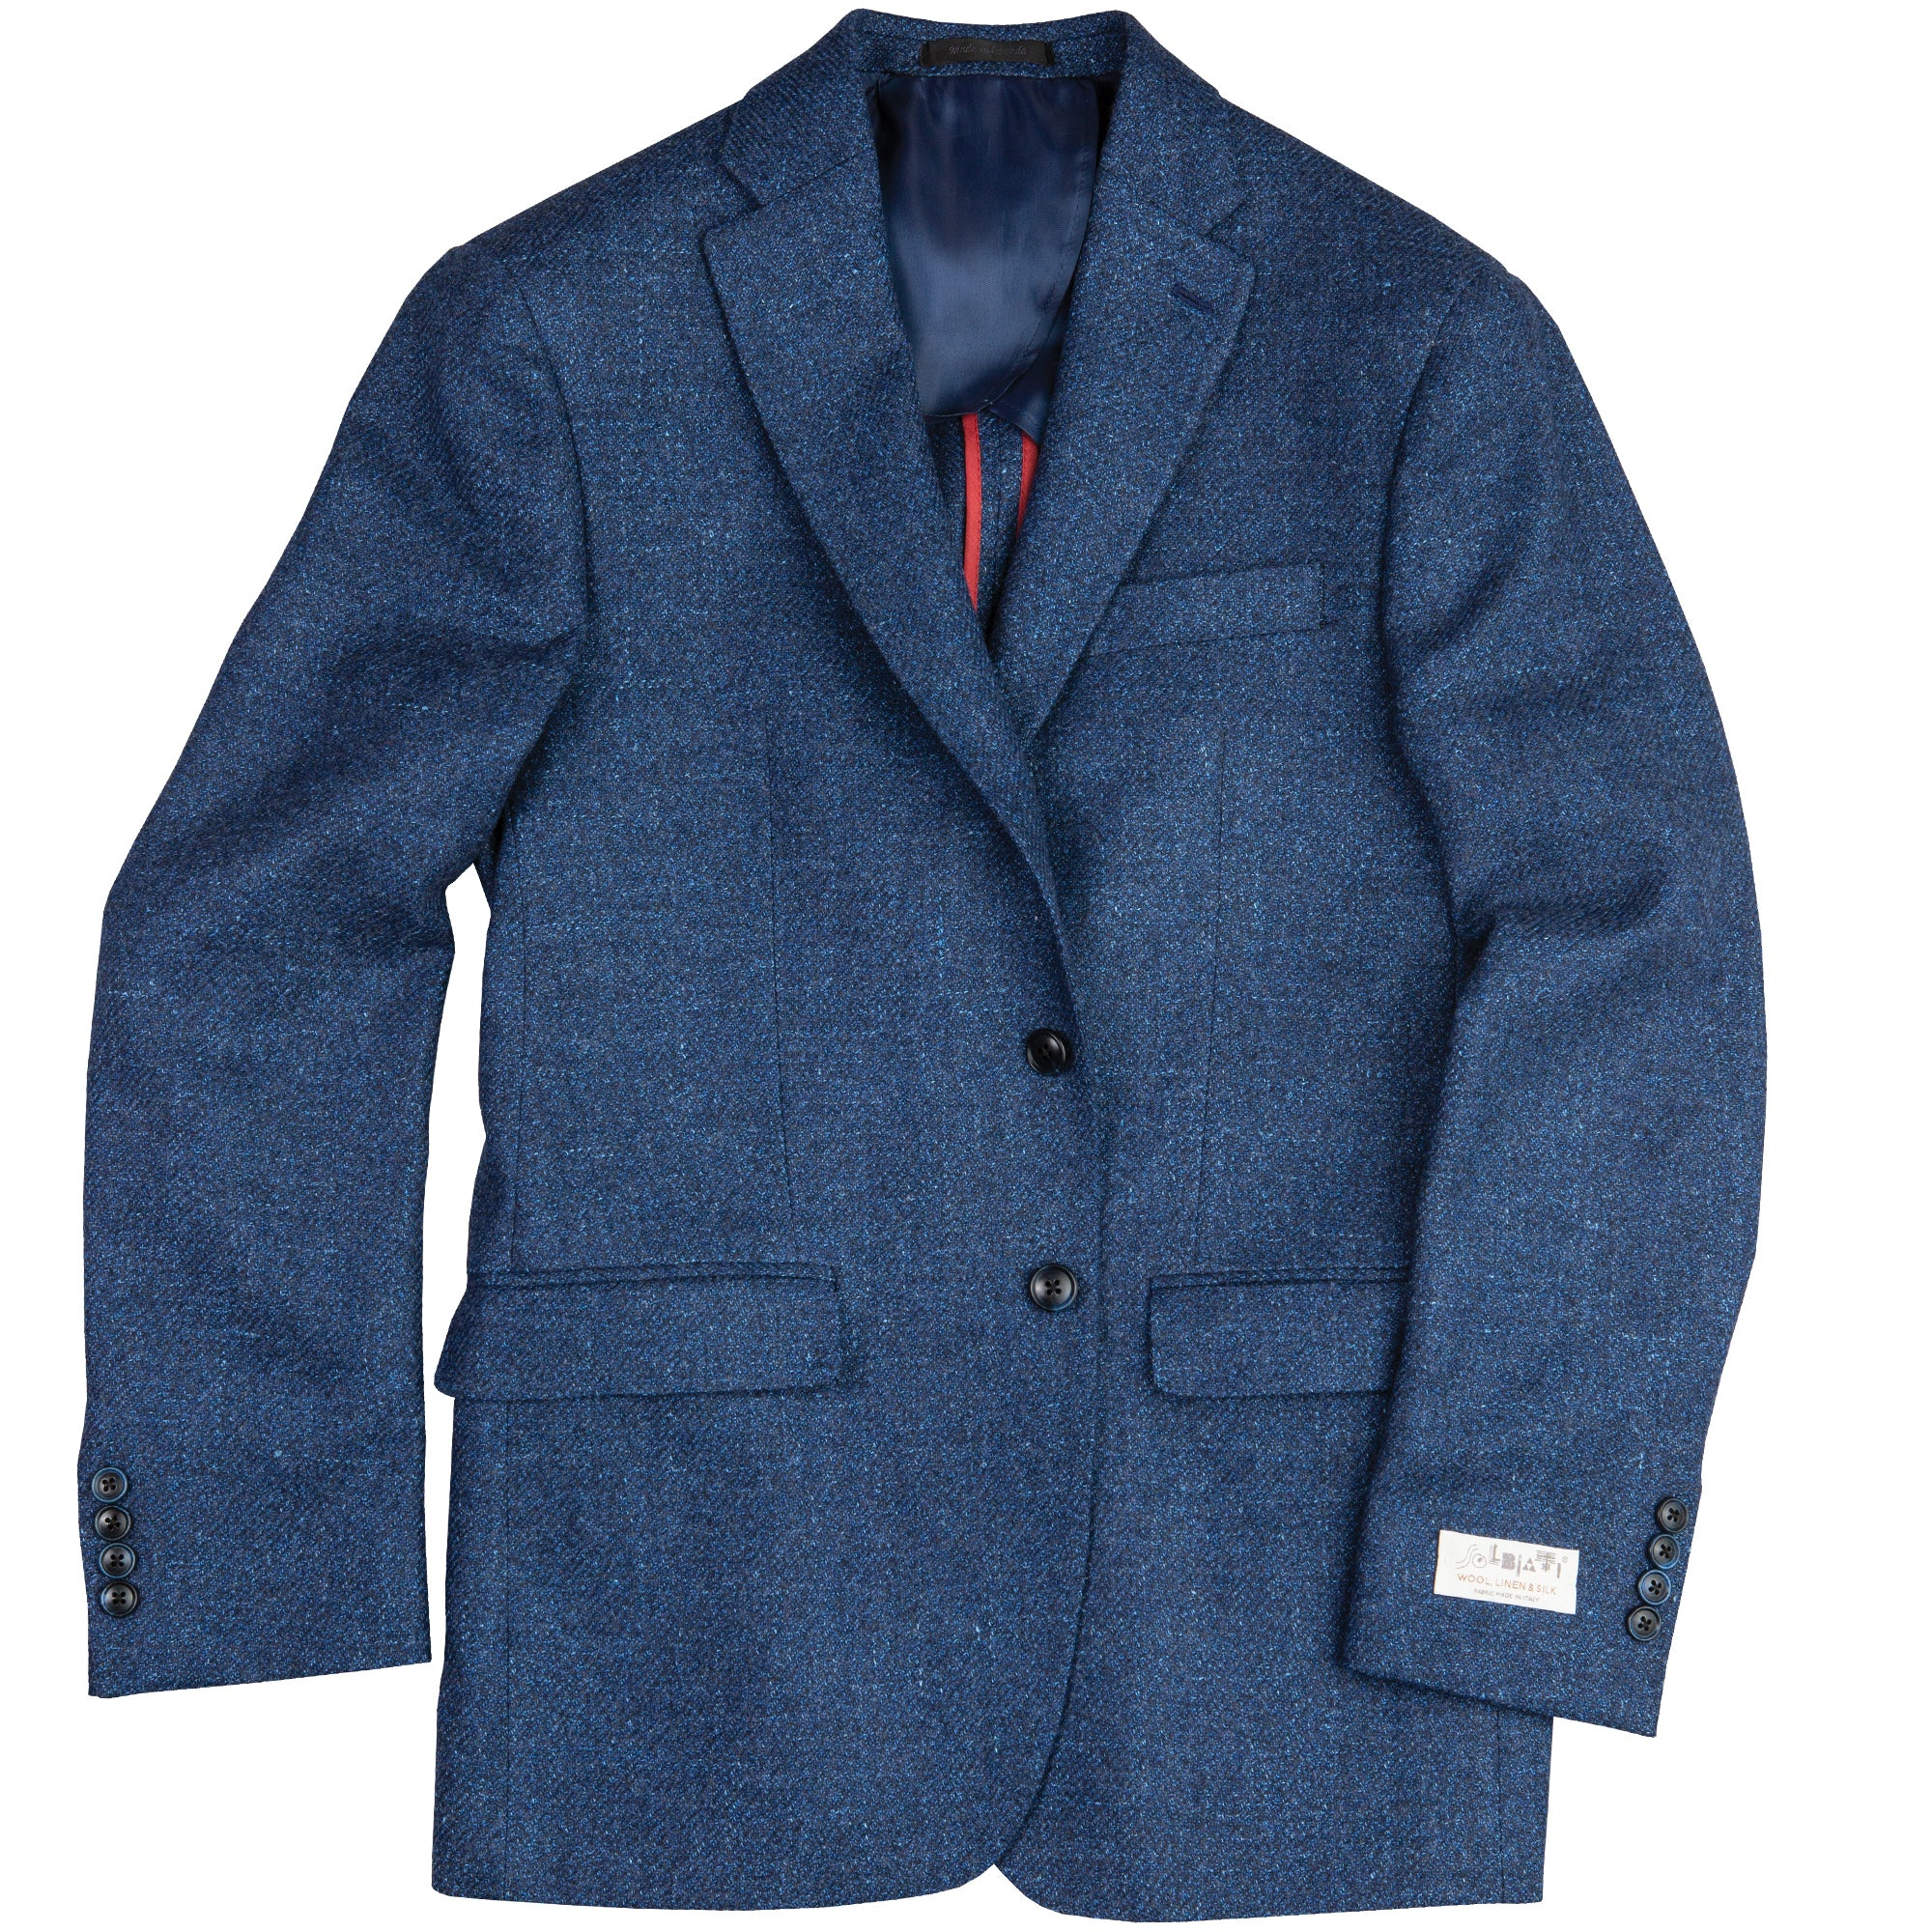 Blue Woven Soft Coat - OnwardReserve